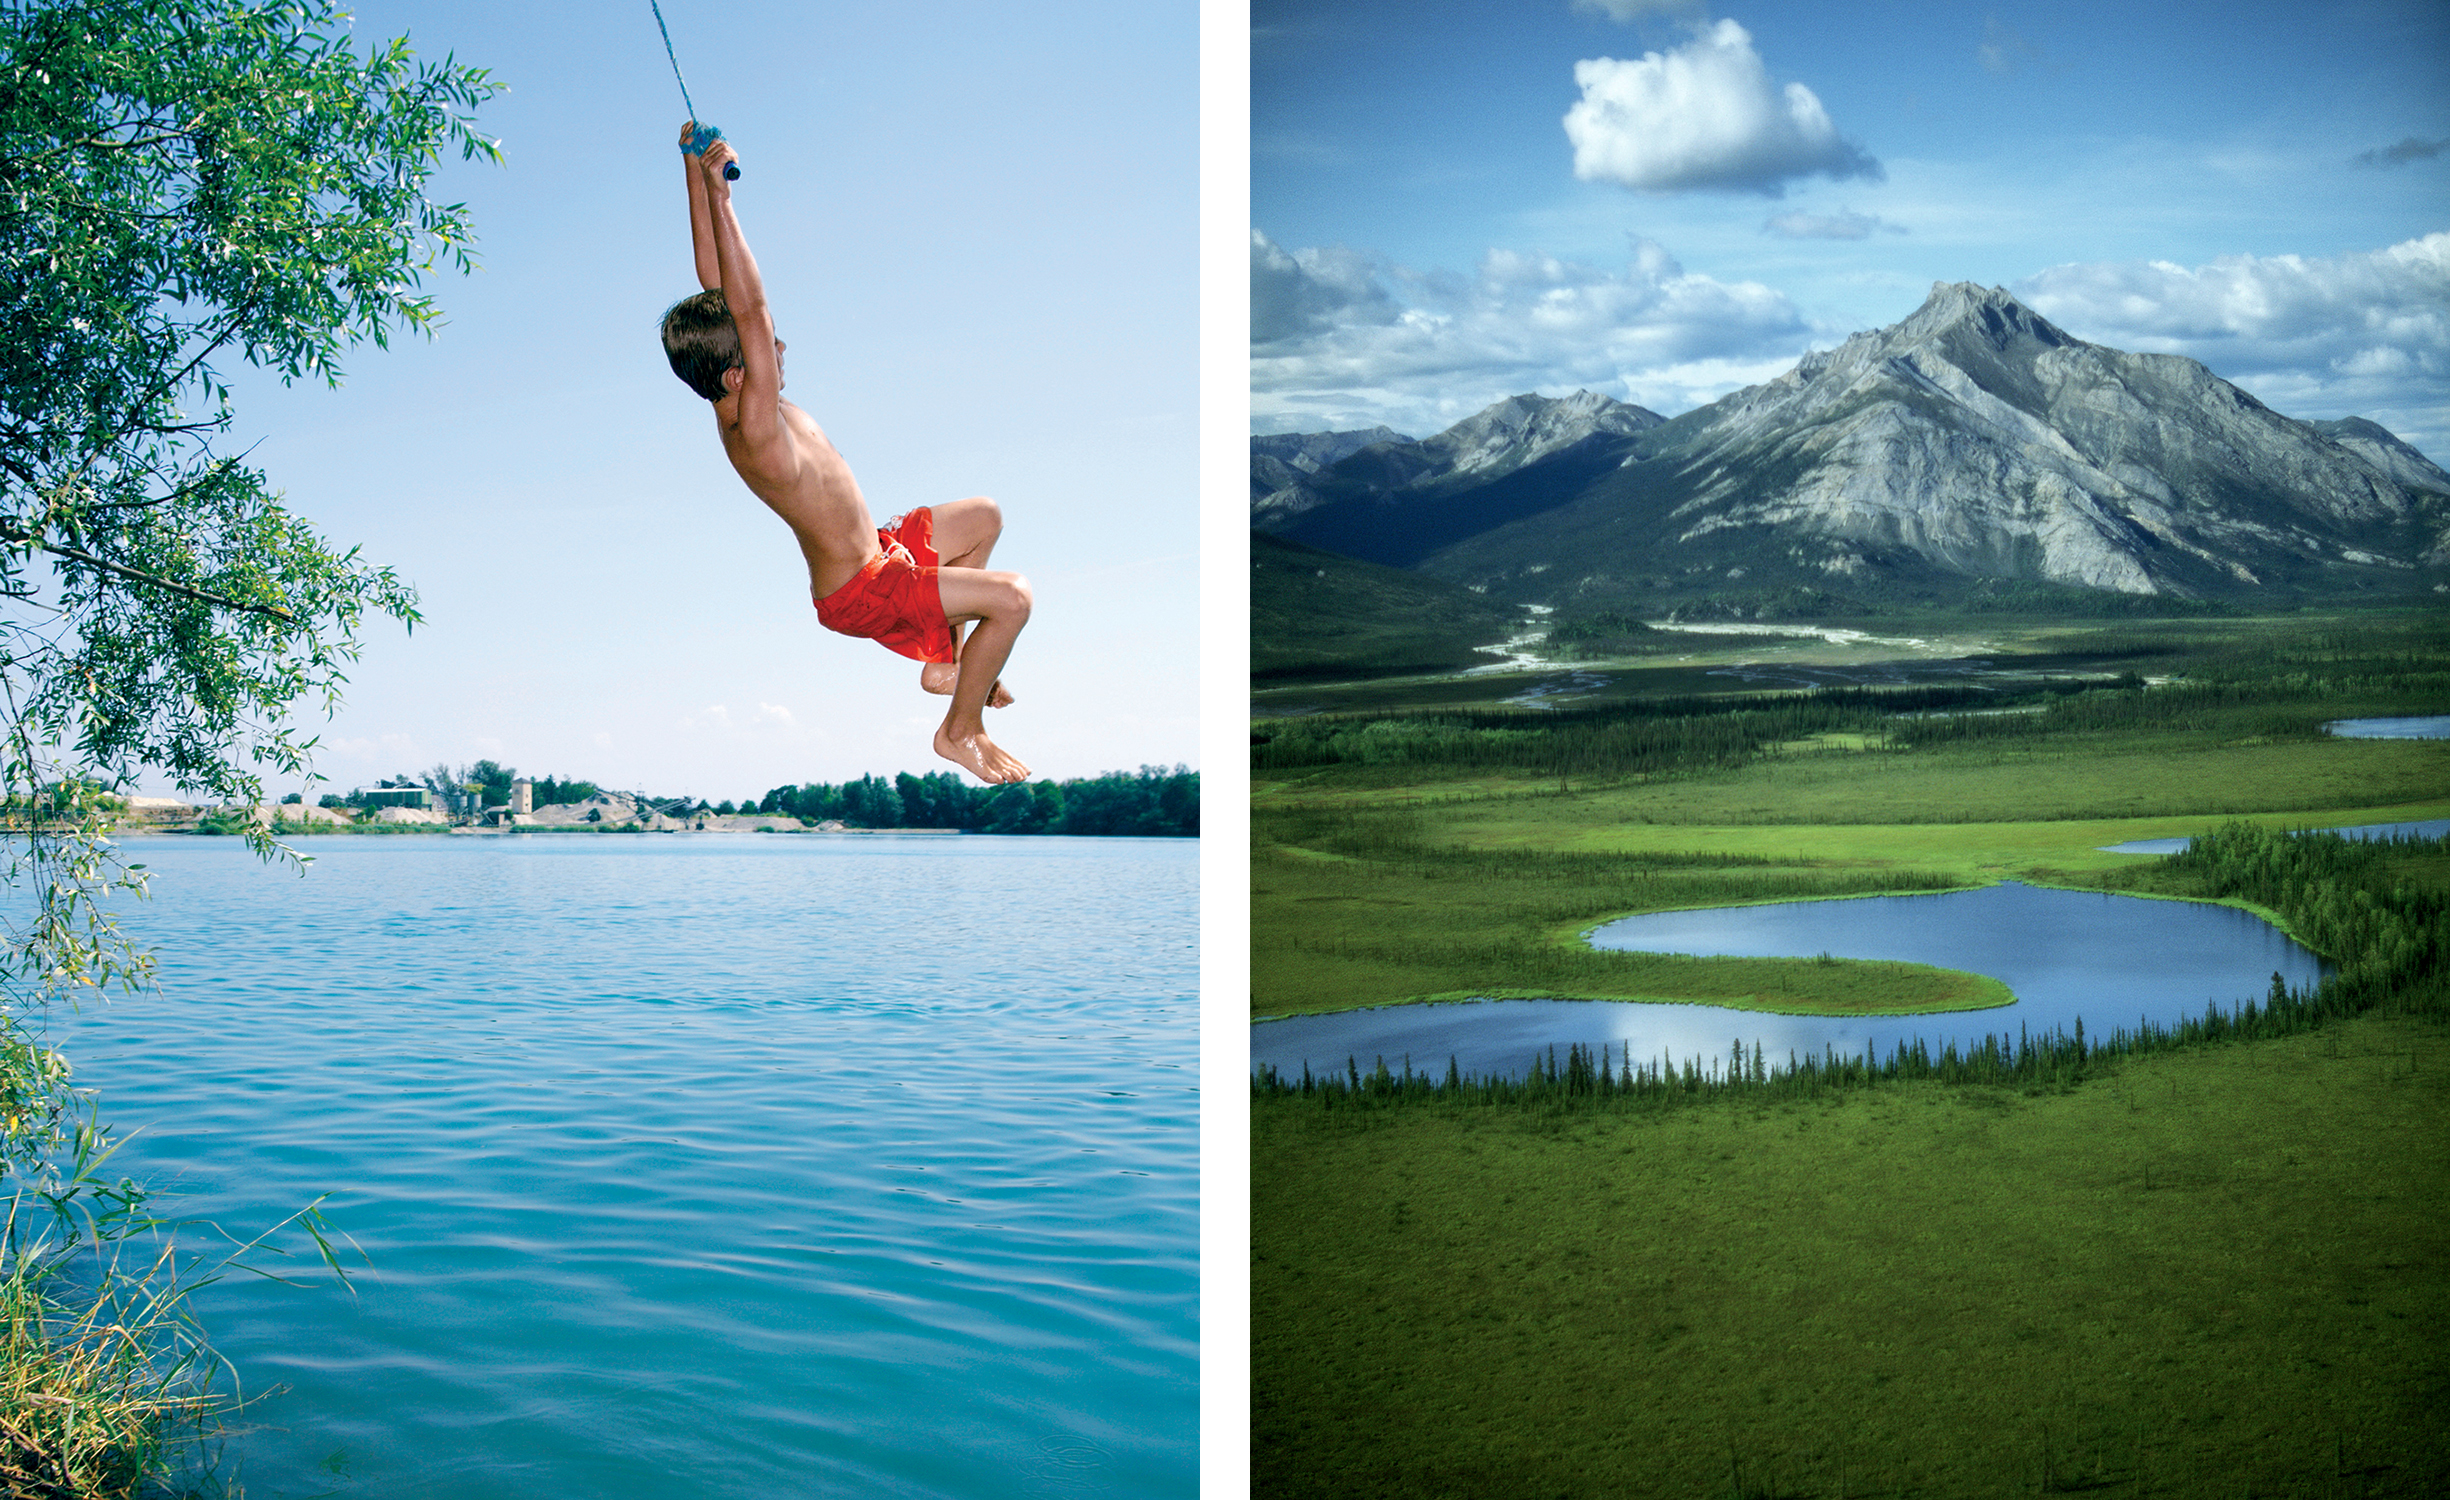 Left: A boy swings on a rope. Right: An aerial view of the John River in Alaska's Gates of the Arctic National Park.